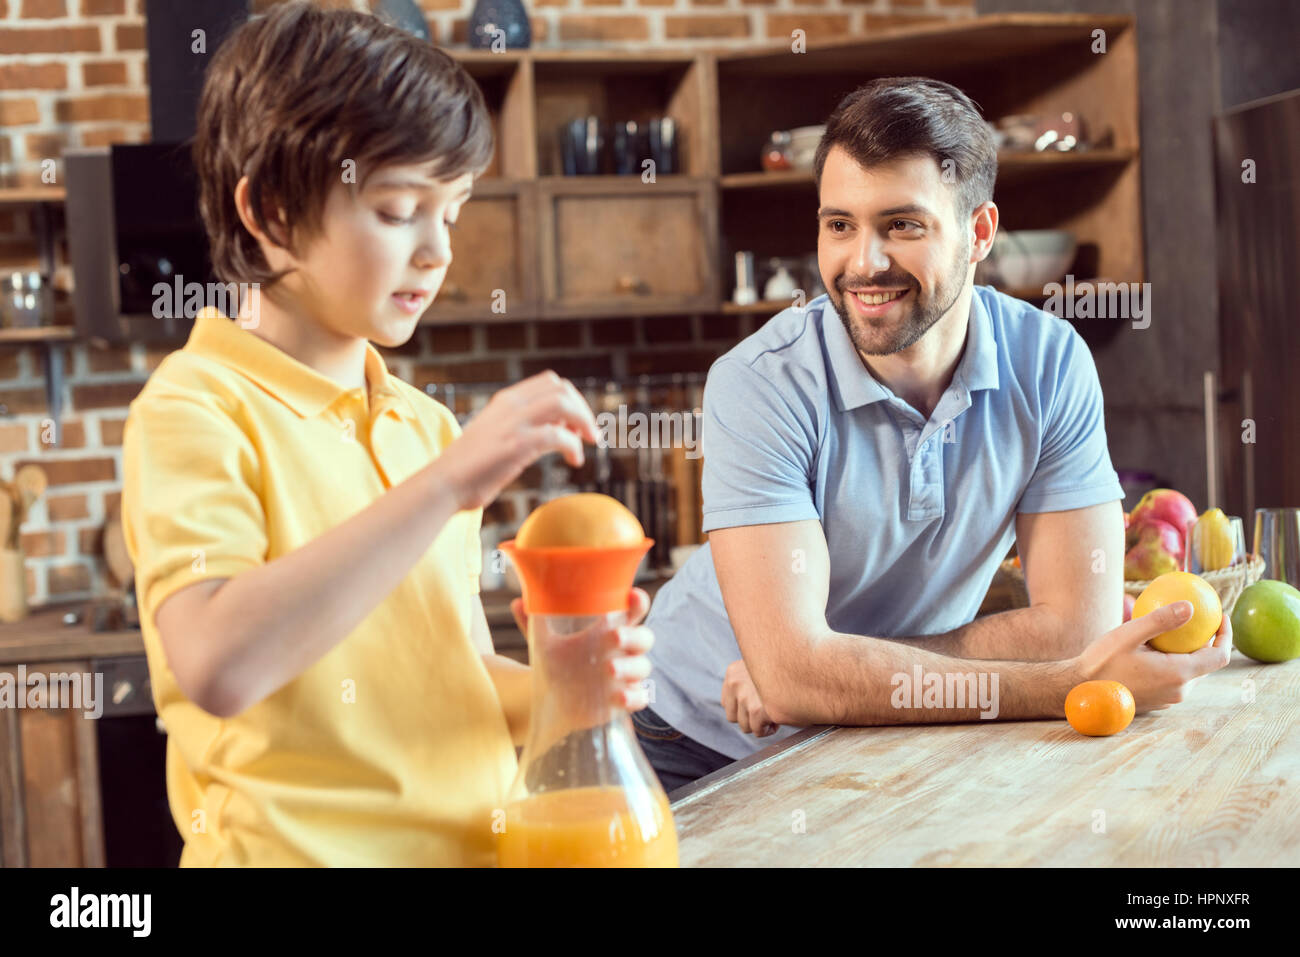 father looking at little son squeezing fresh juice in kitchen - Stock Image